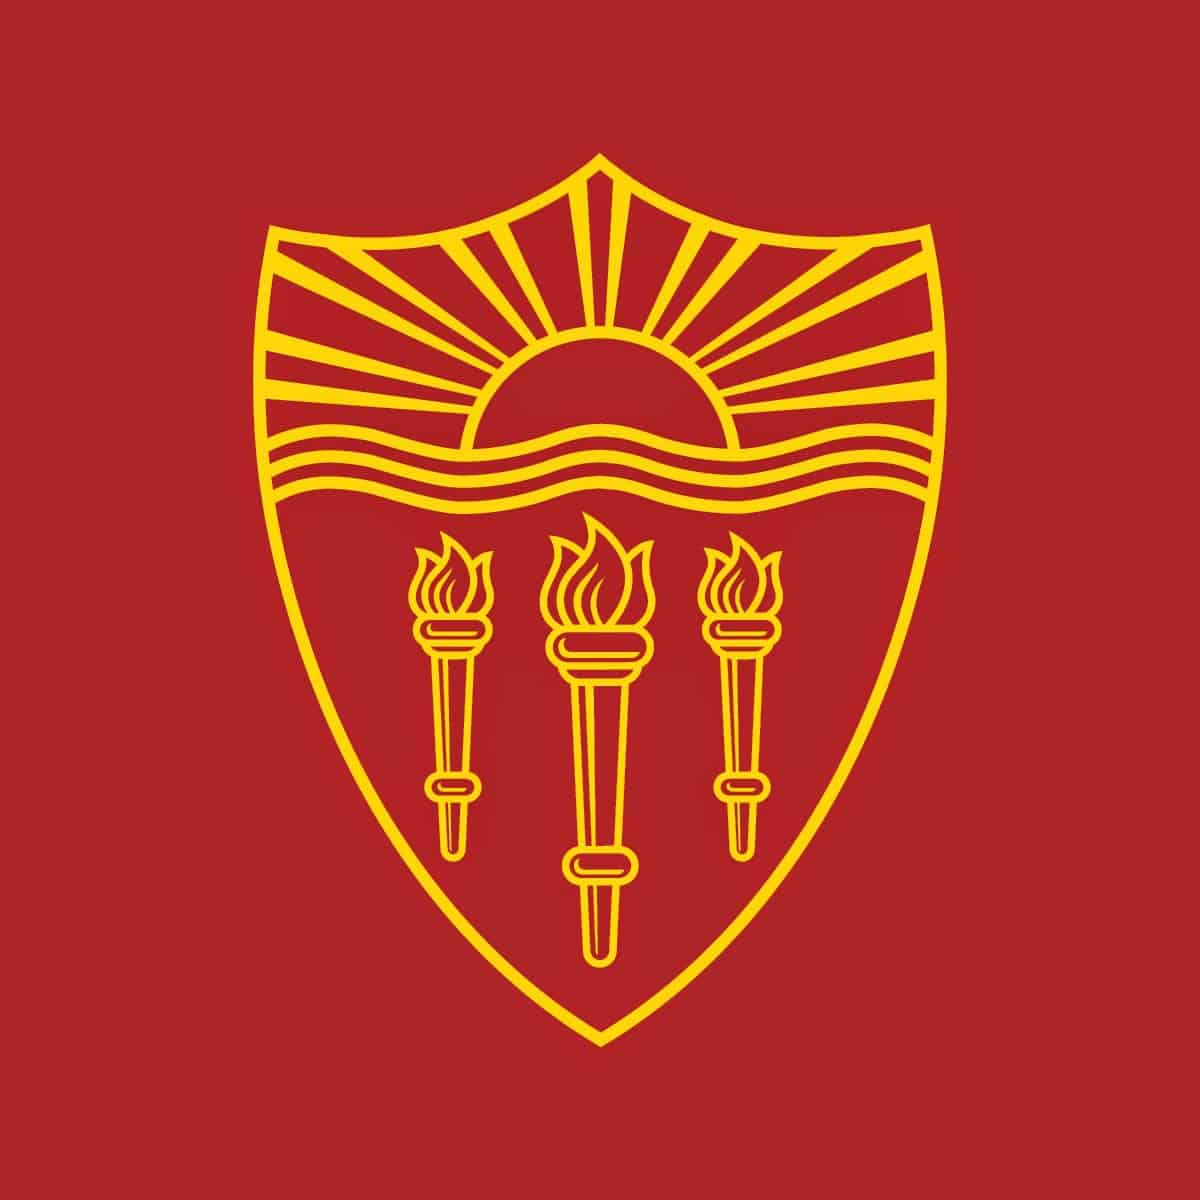 University of Southern Caliornia Shield